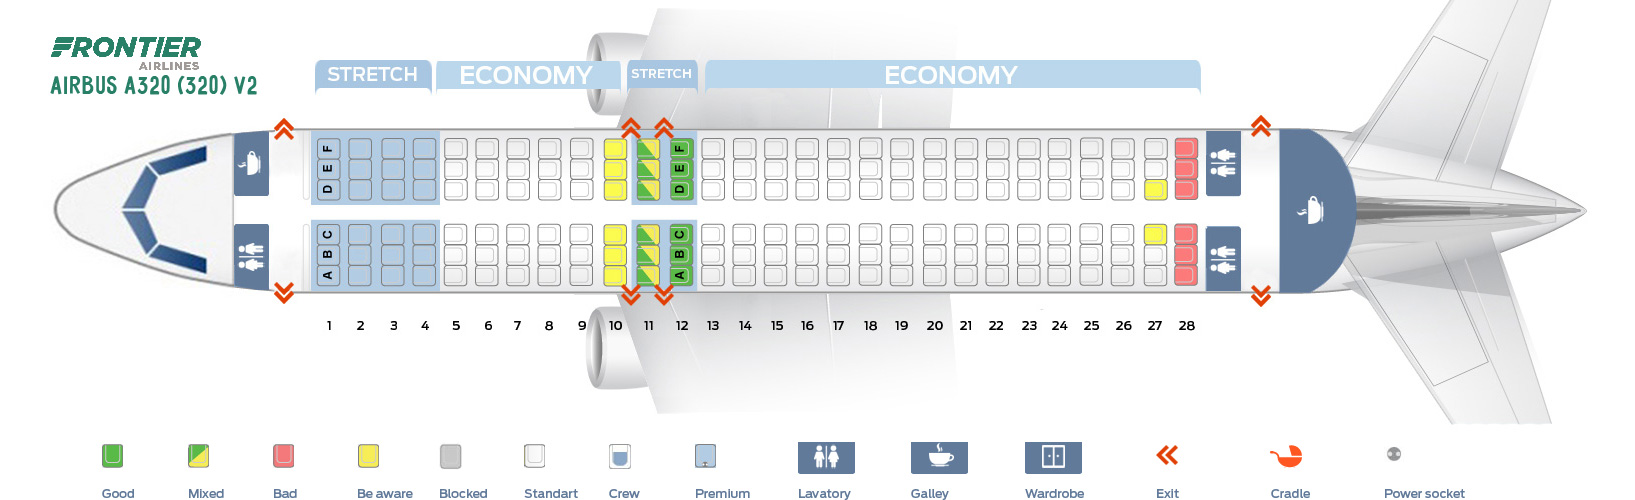 Seat Map Airbus A320-200 V2 Frontier Airlines